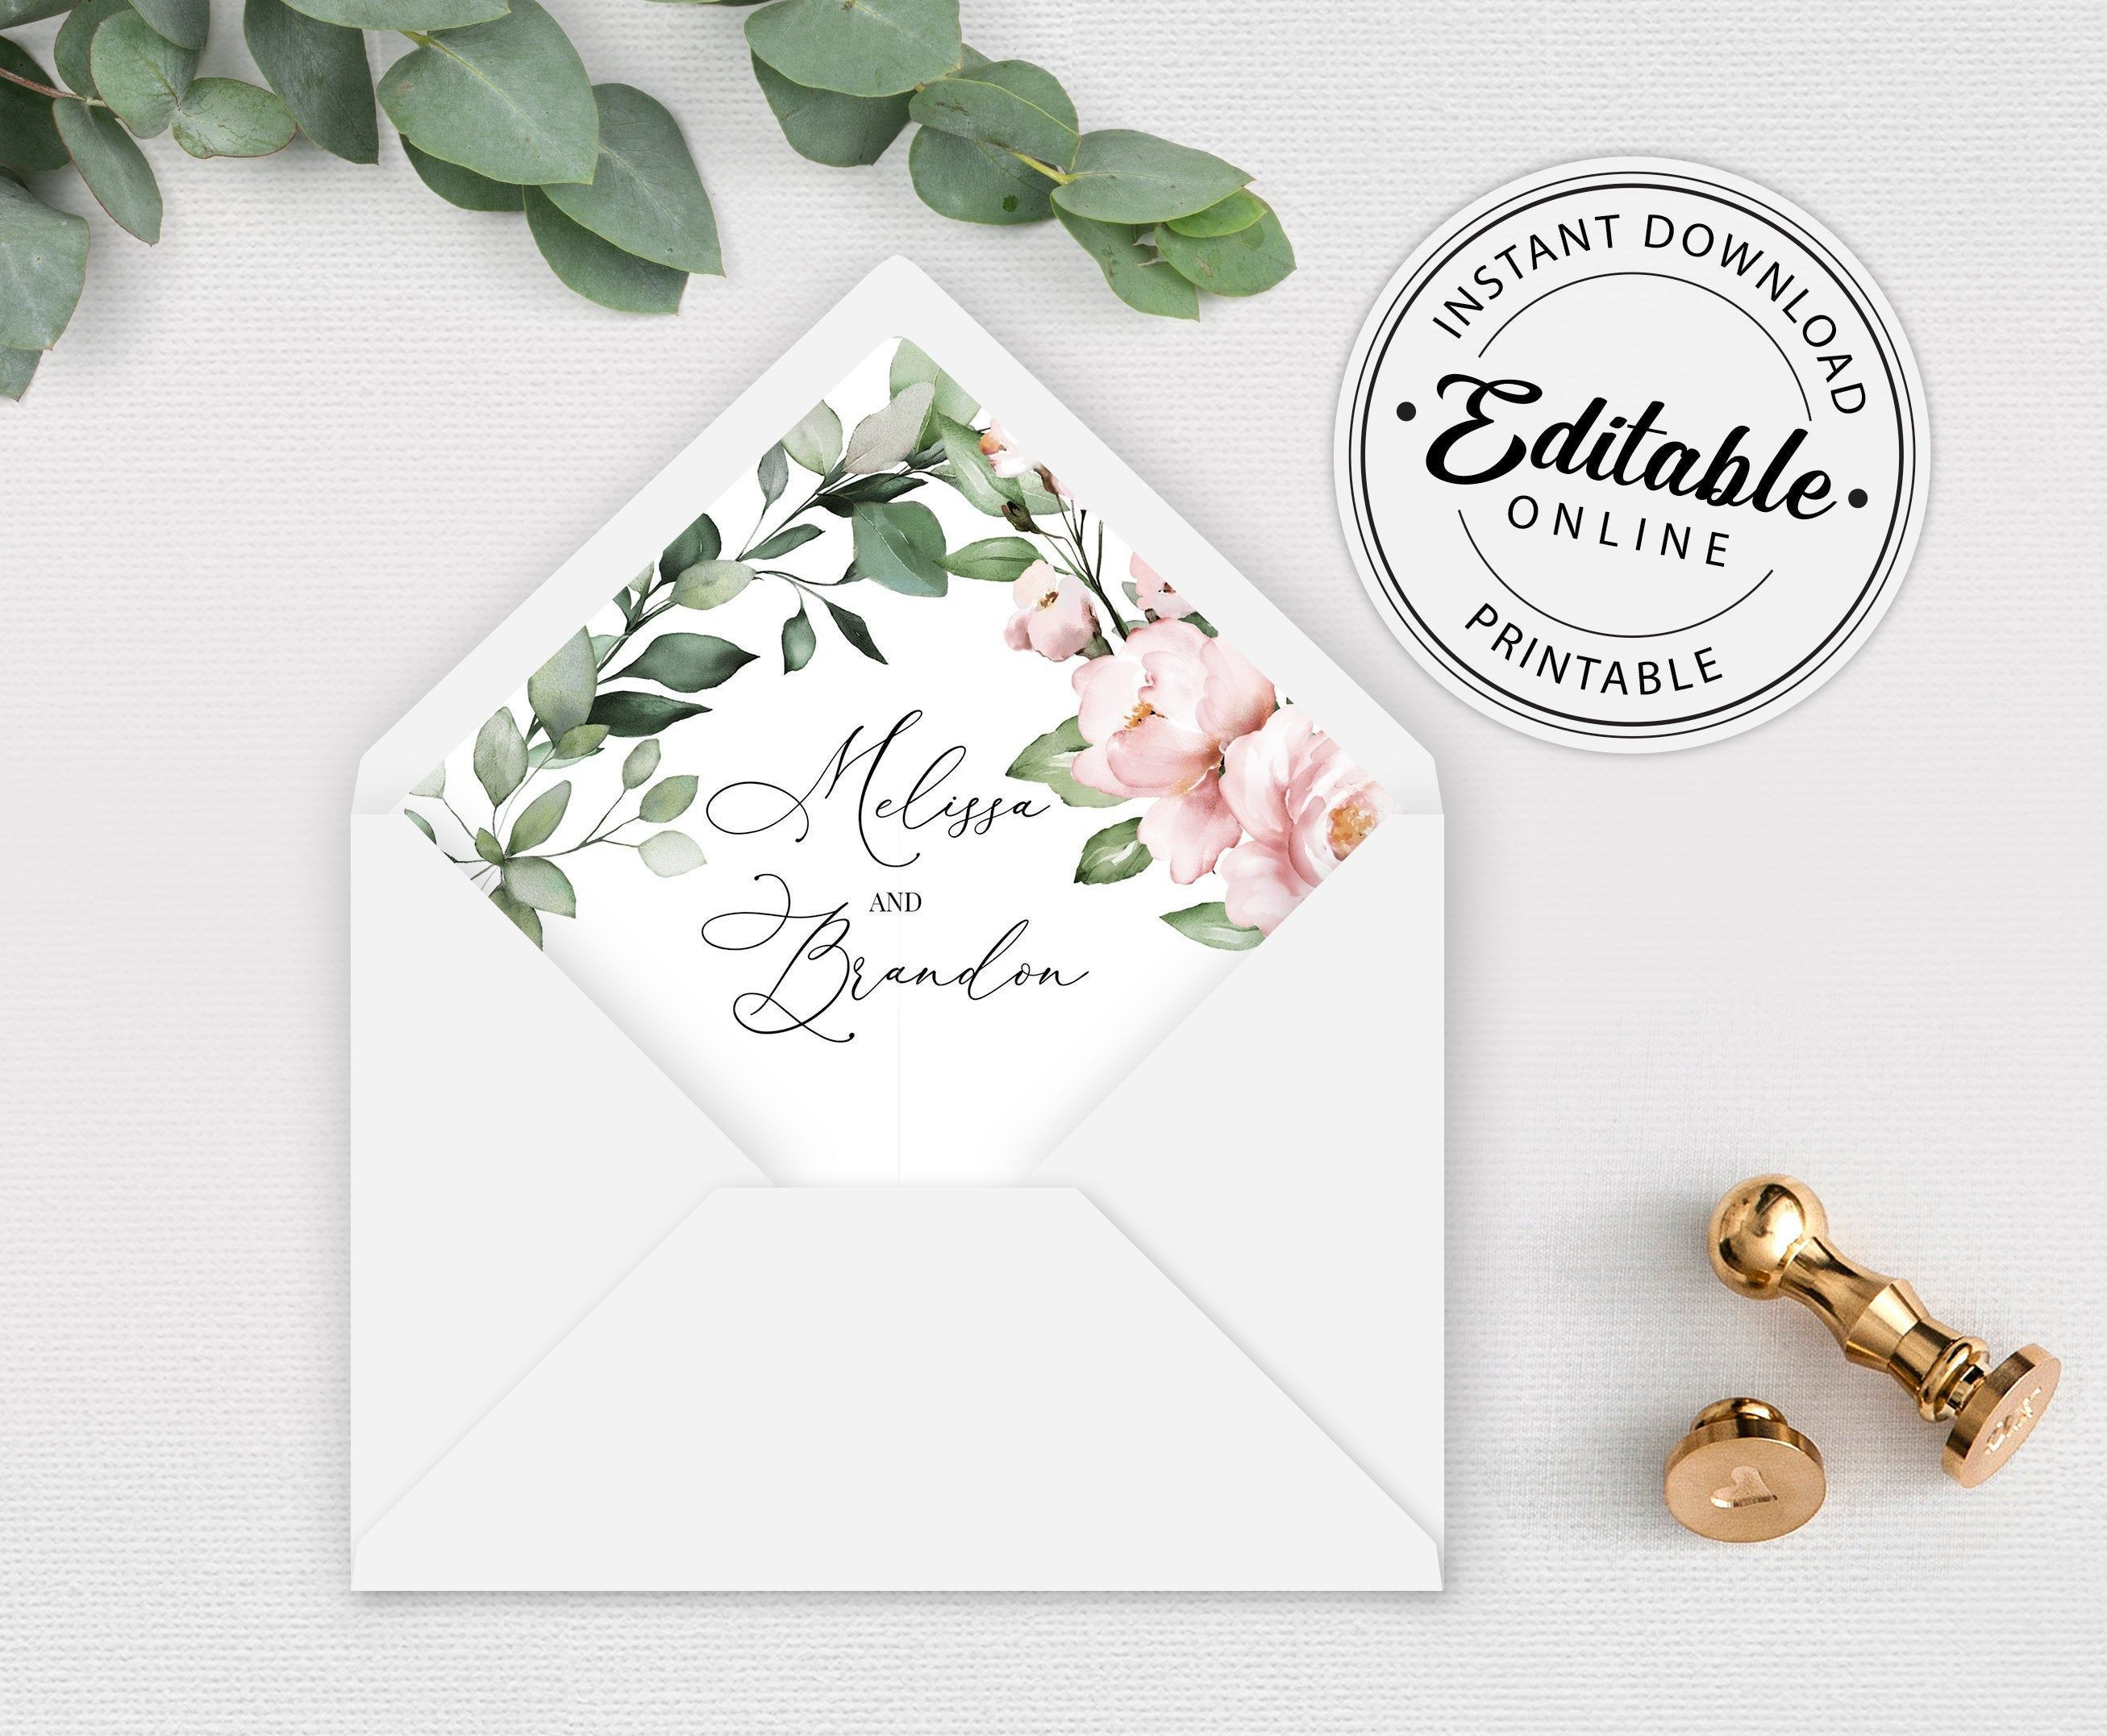 002 Incredible A7 Square Flap Envelope Liner Template Image Full